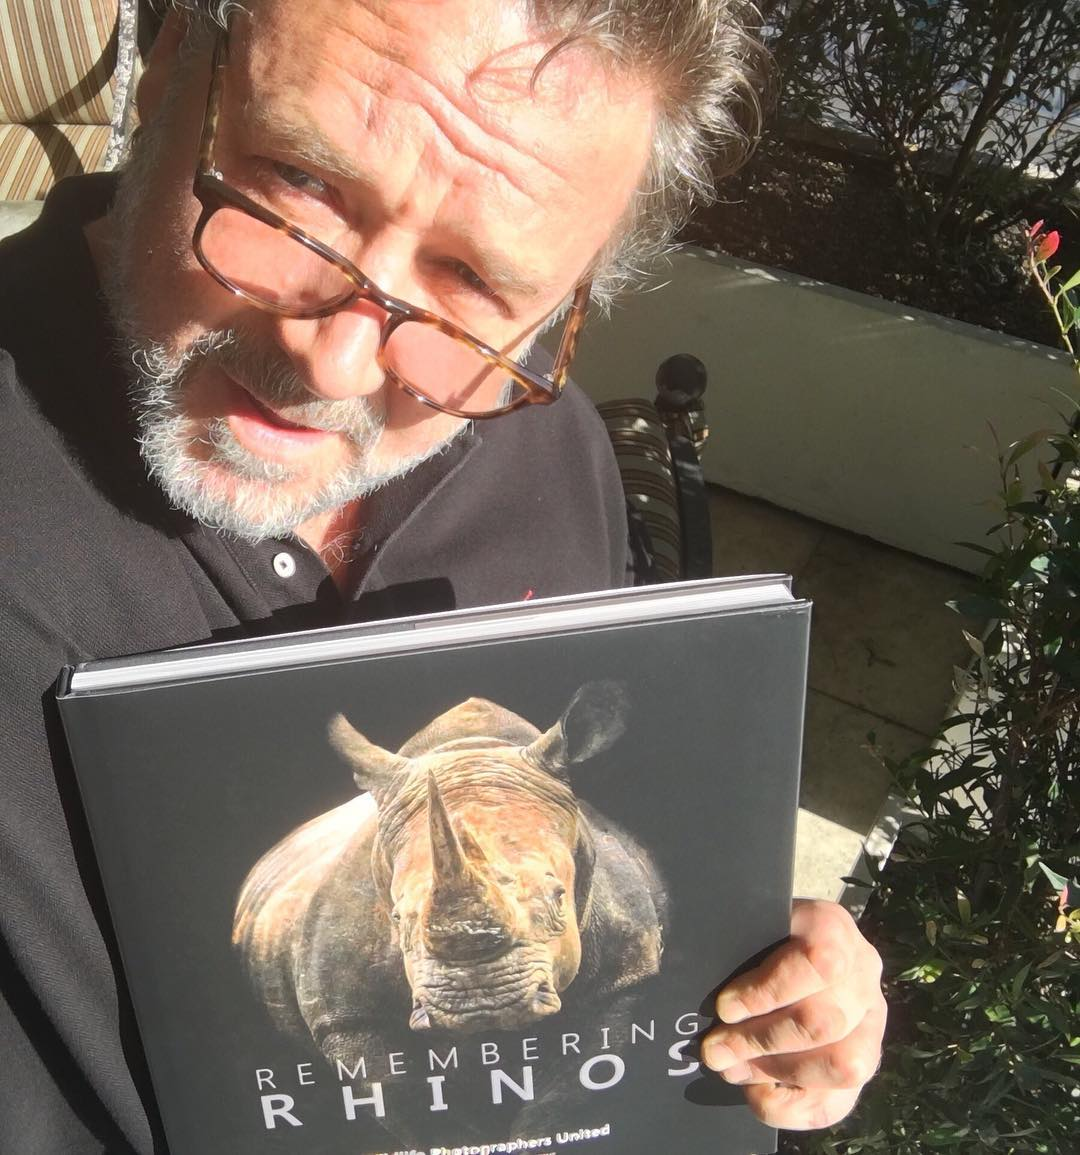 Rhinoday Rememberingrhinos.com Buyrememberingbooks.com